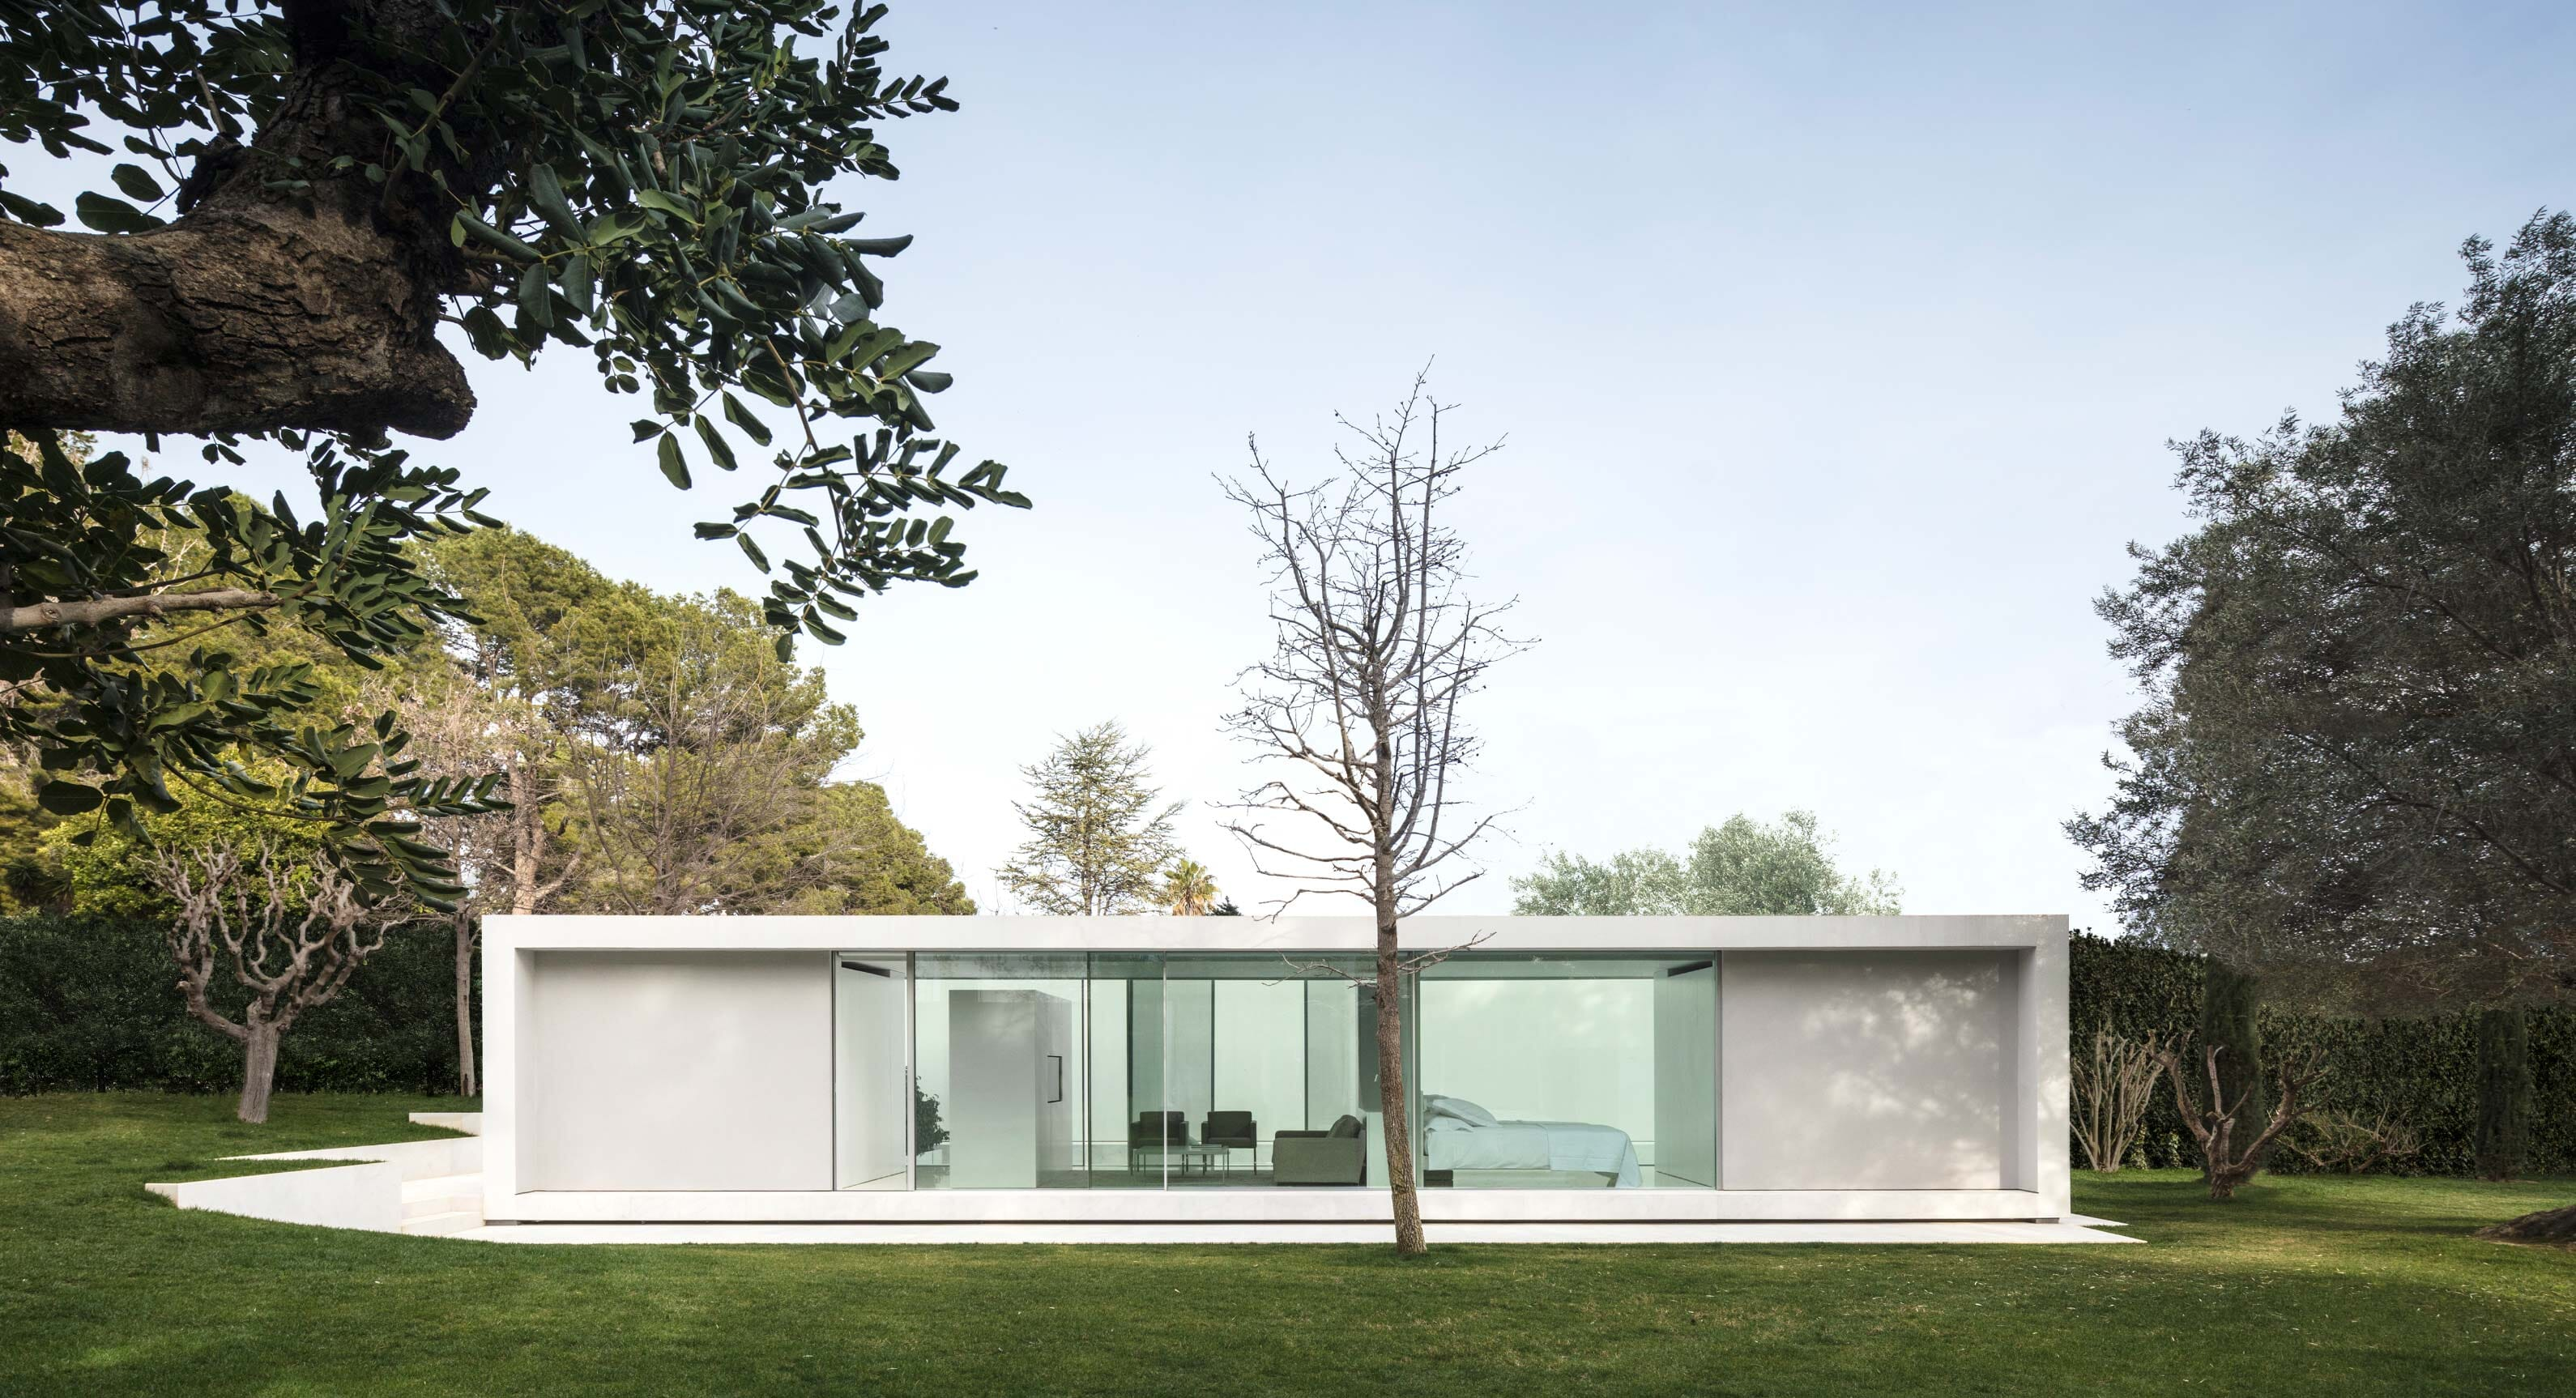 Unearth The Secrets Of Simplicity In This Minimalist Spanish Pavilion